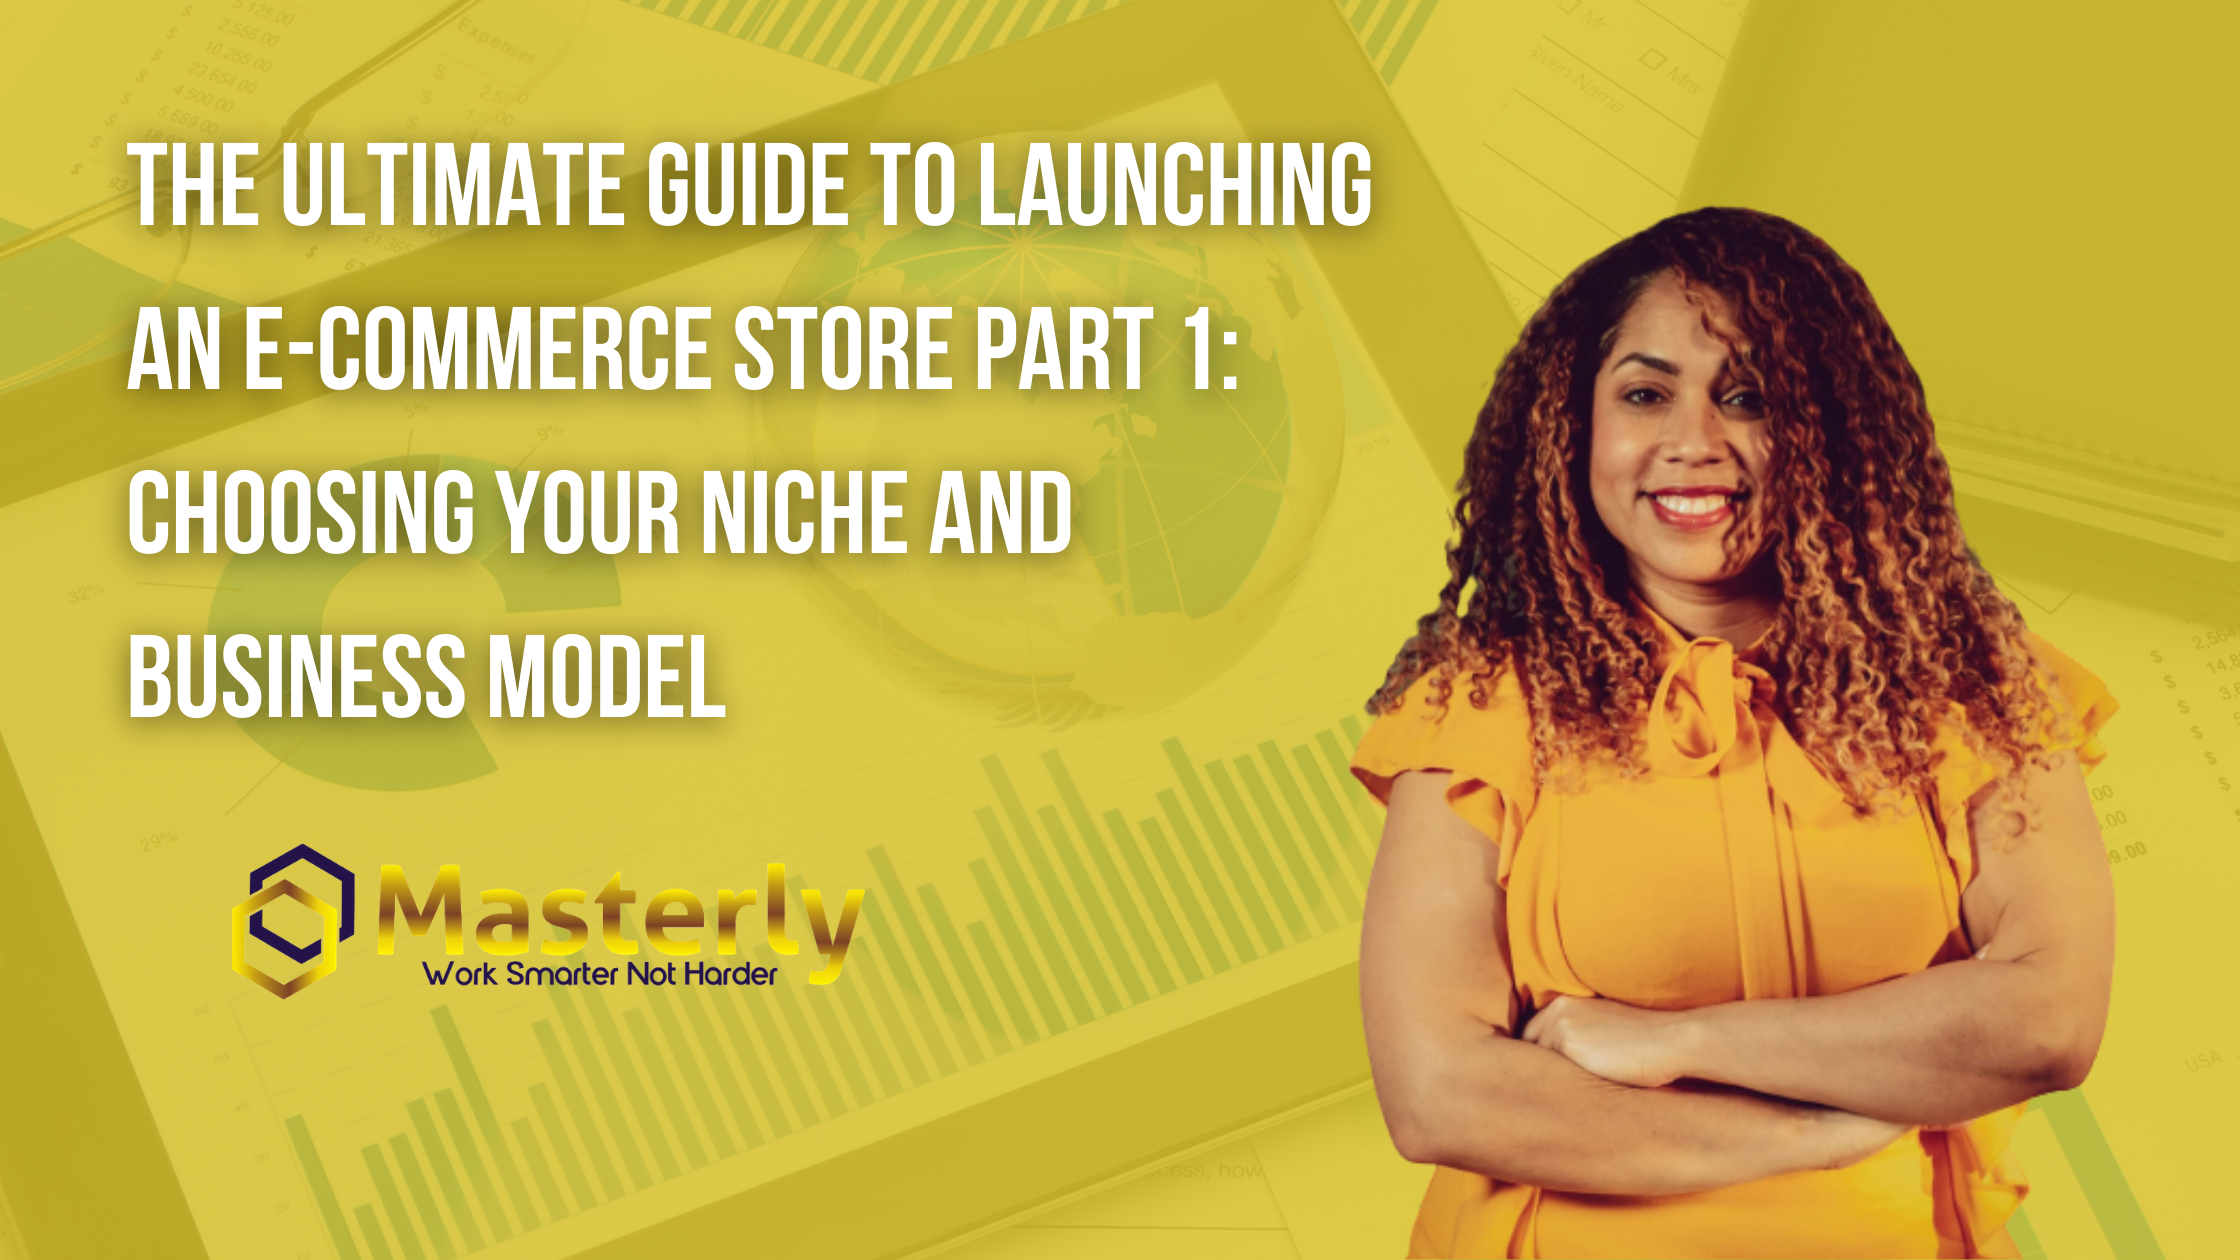 The Ultimate Guide to Launching an E-Commerce Store Part 1: